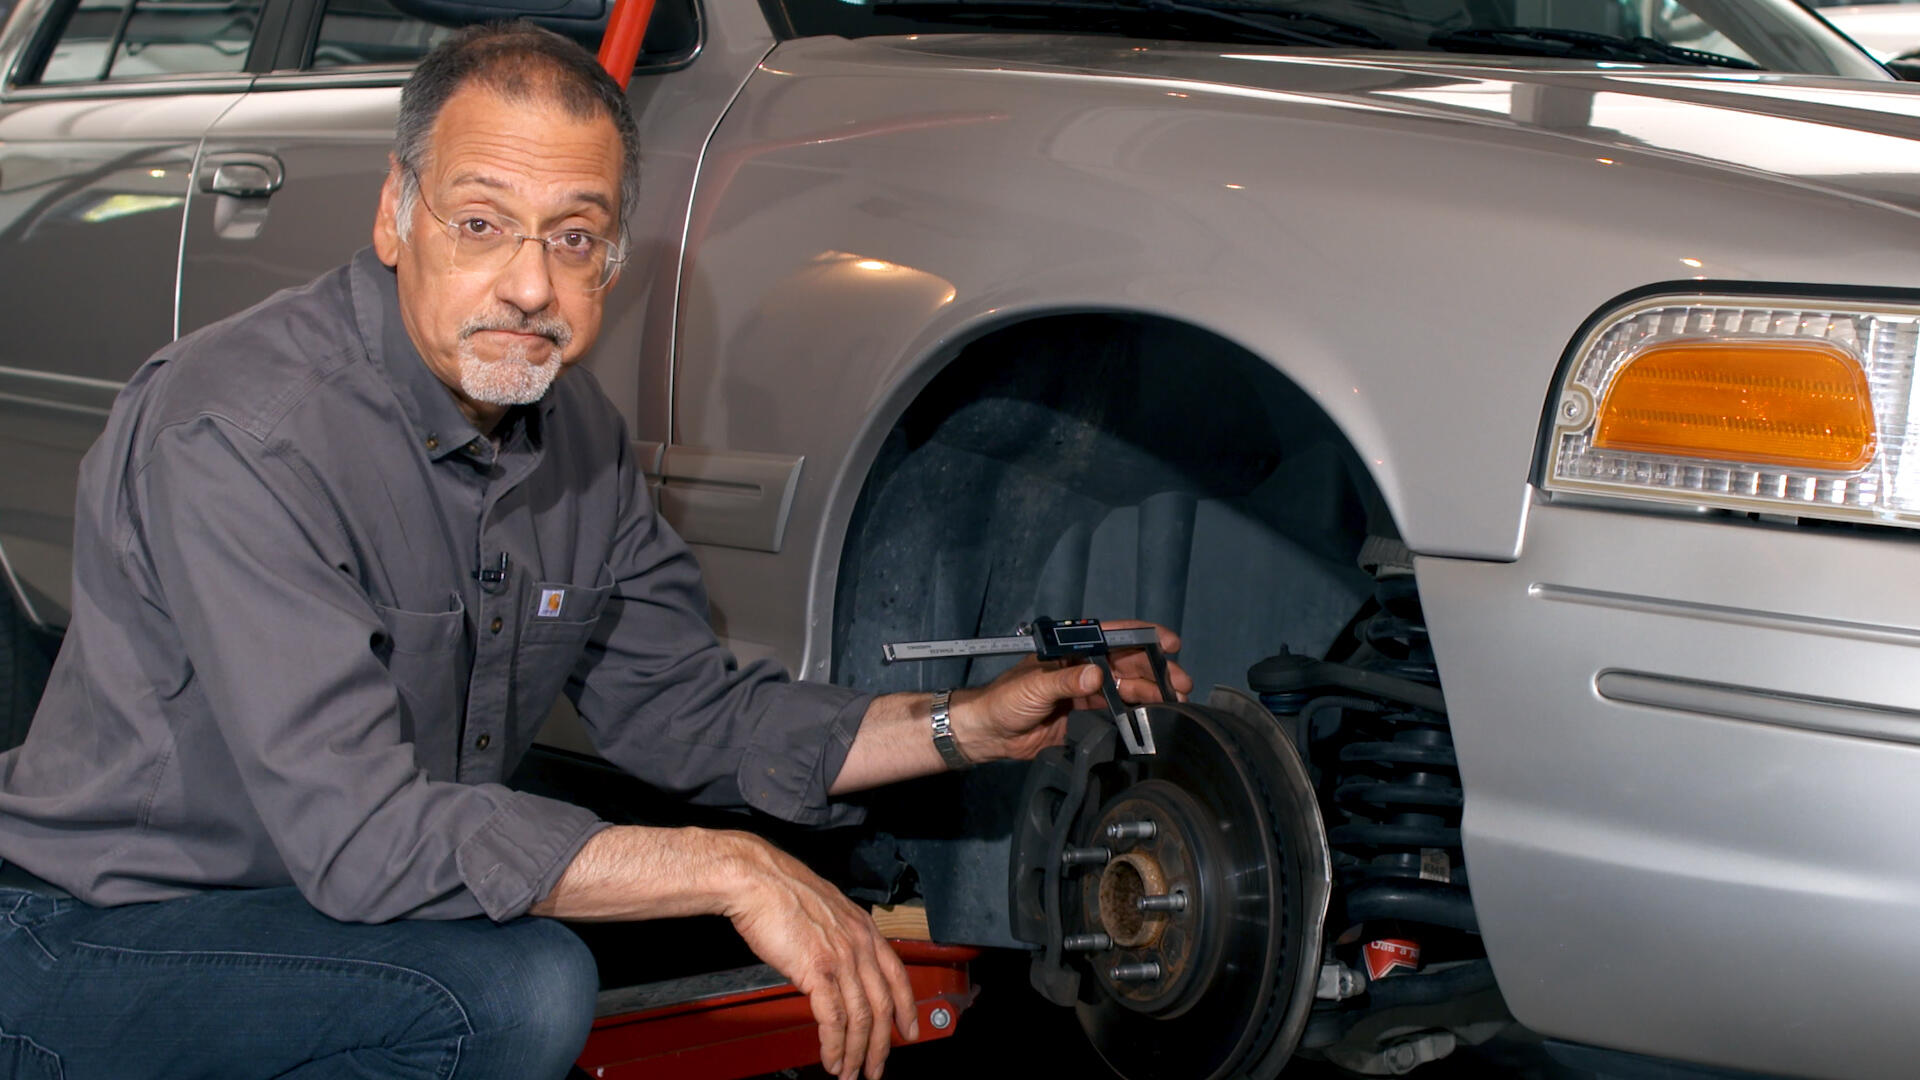 Video: Measuring your car's brakes to tell if you need a brake job